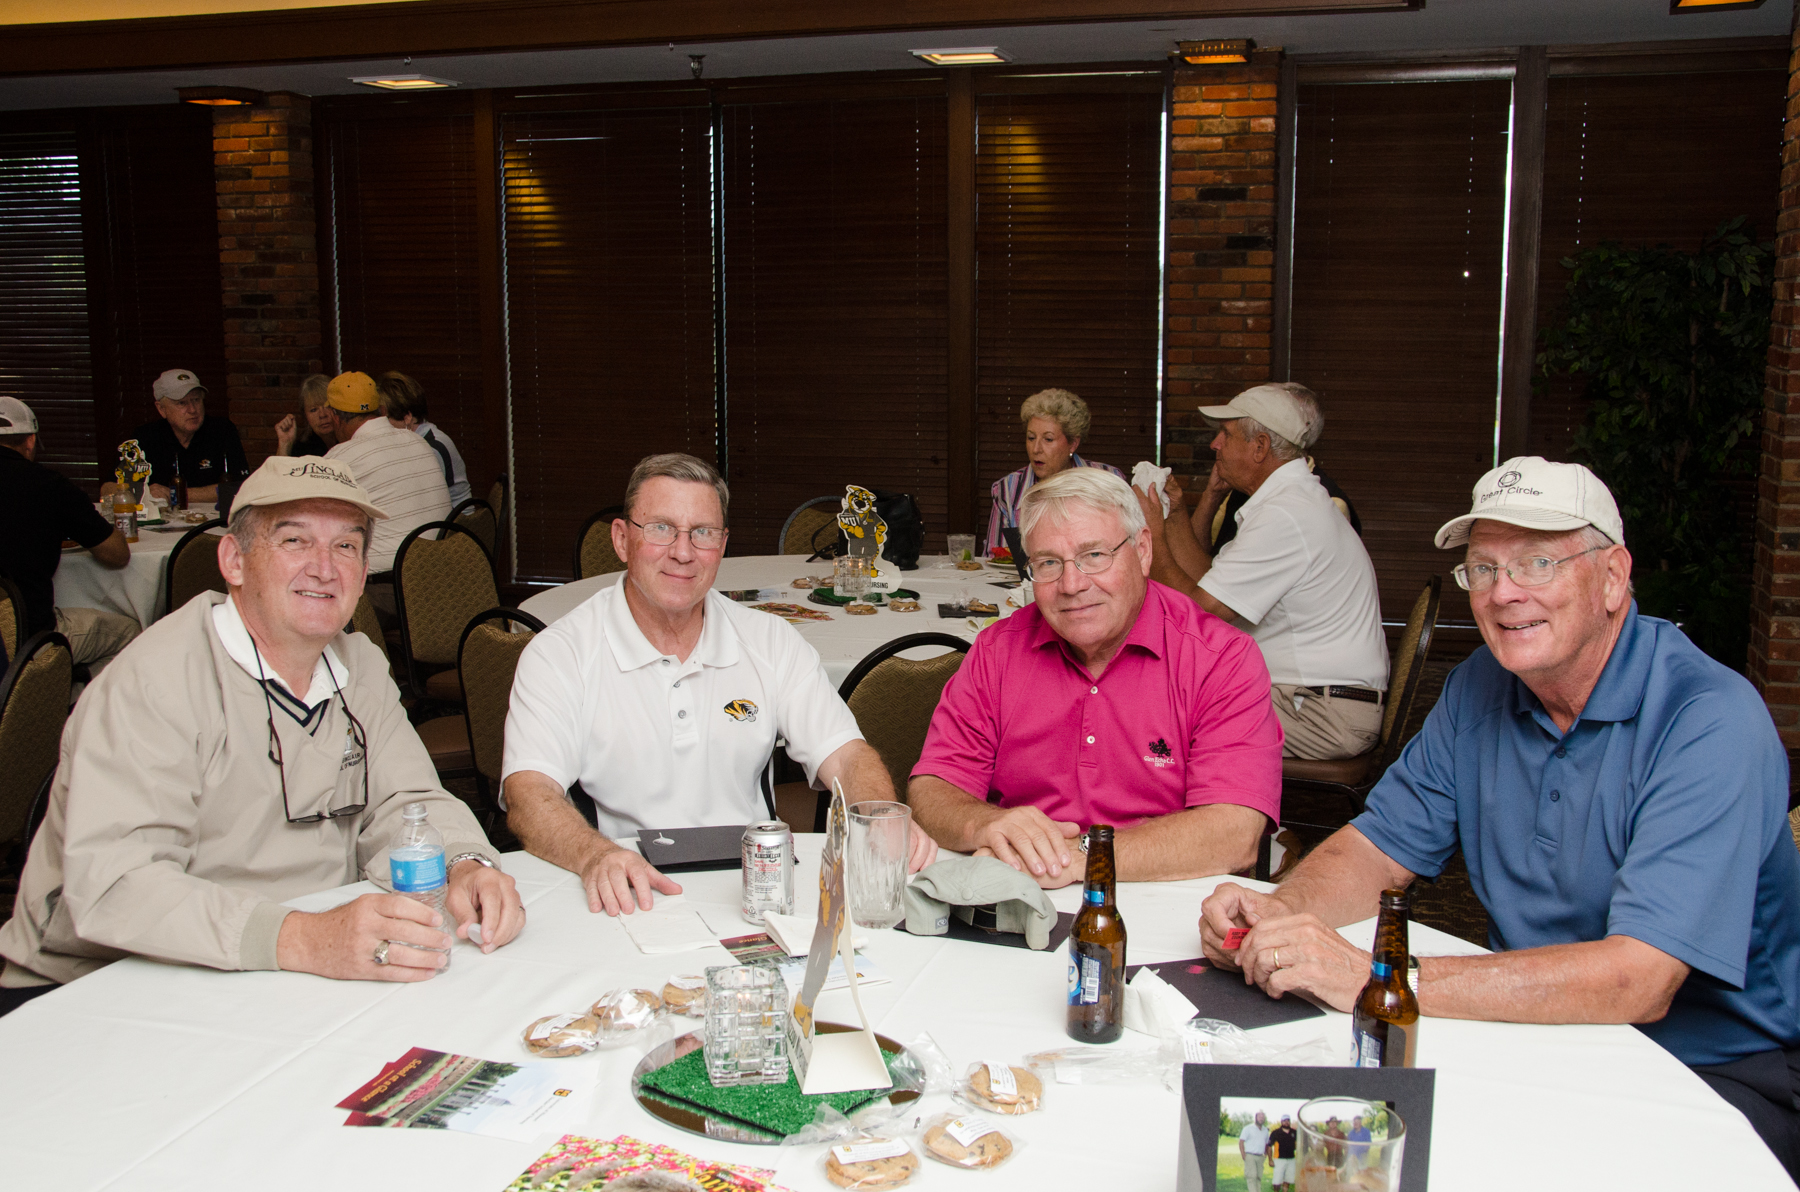 20121001_golf_tournament_116_4x6.jpg